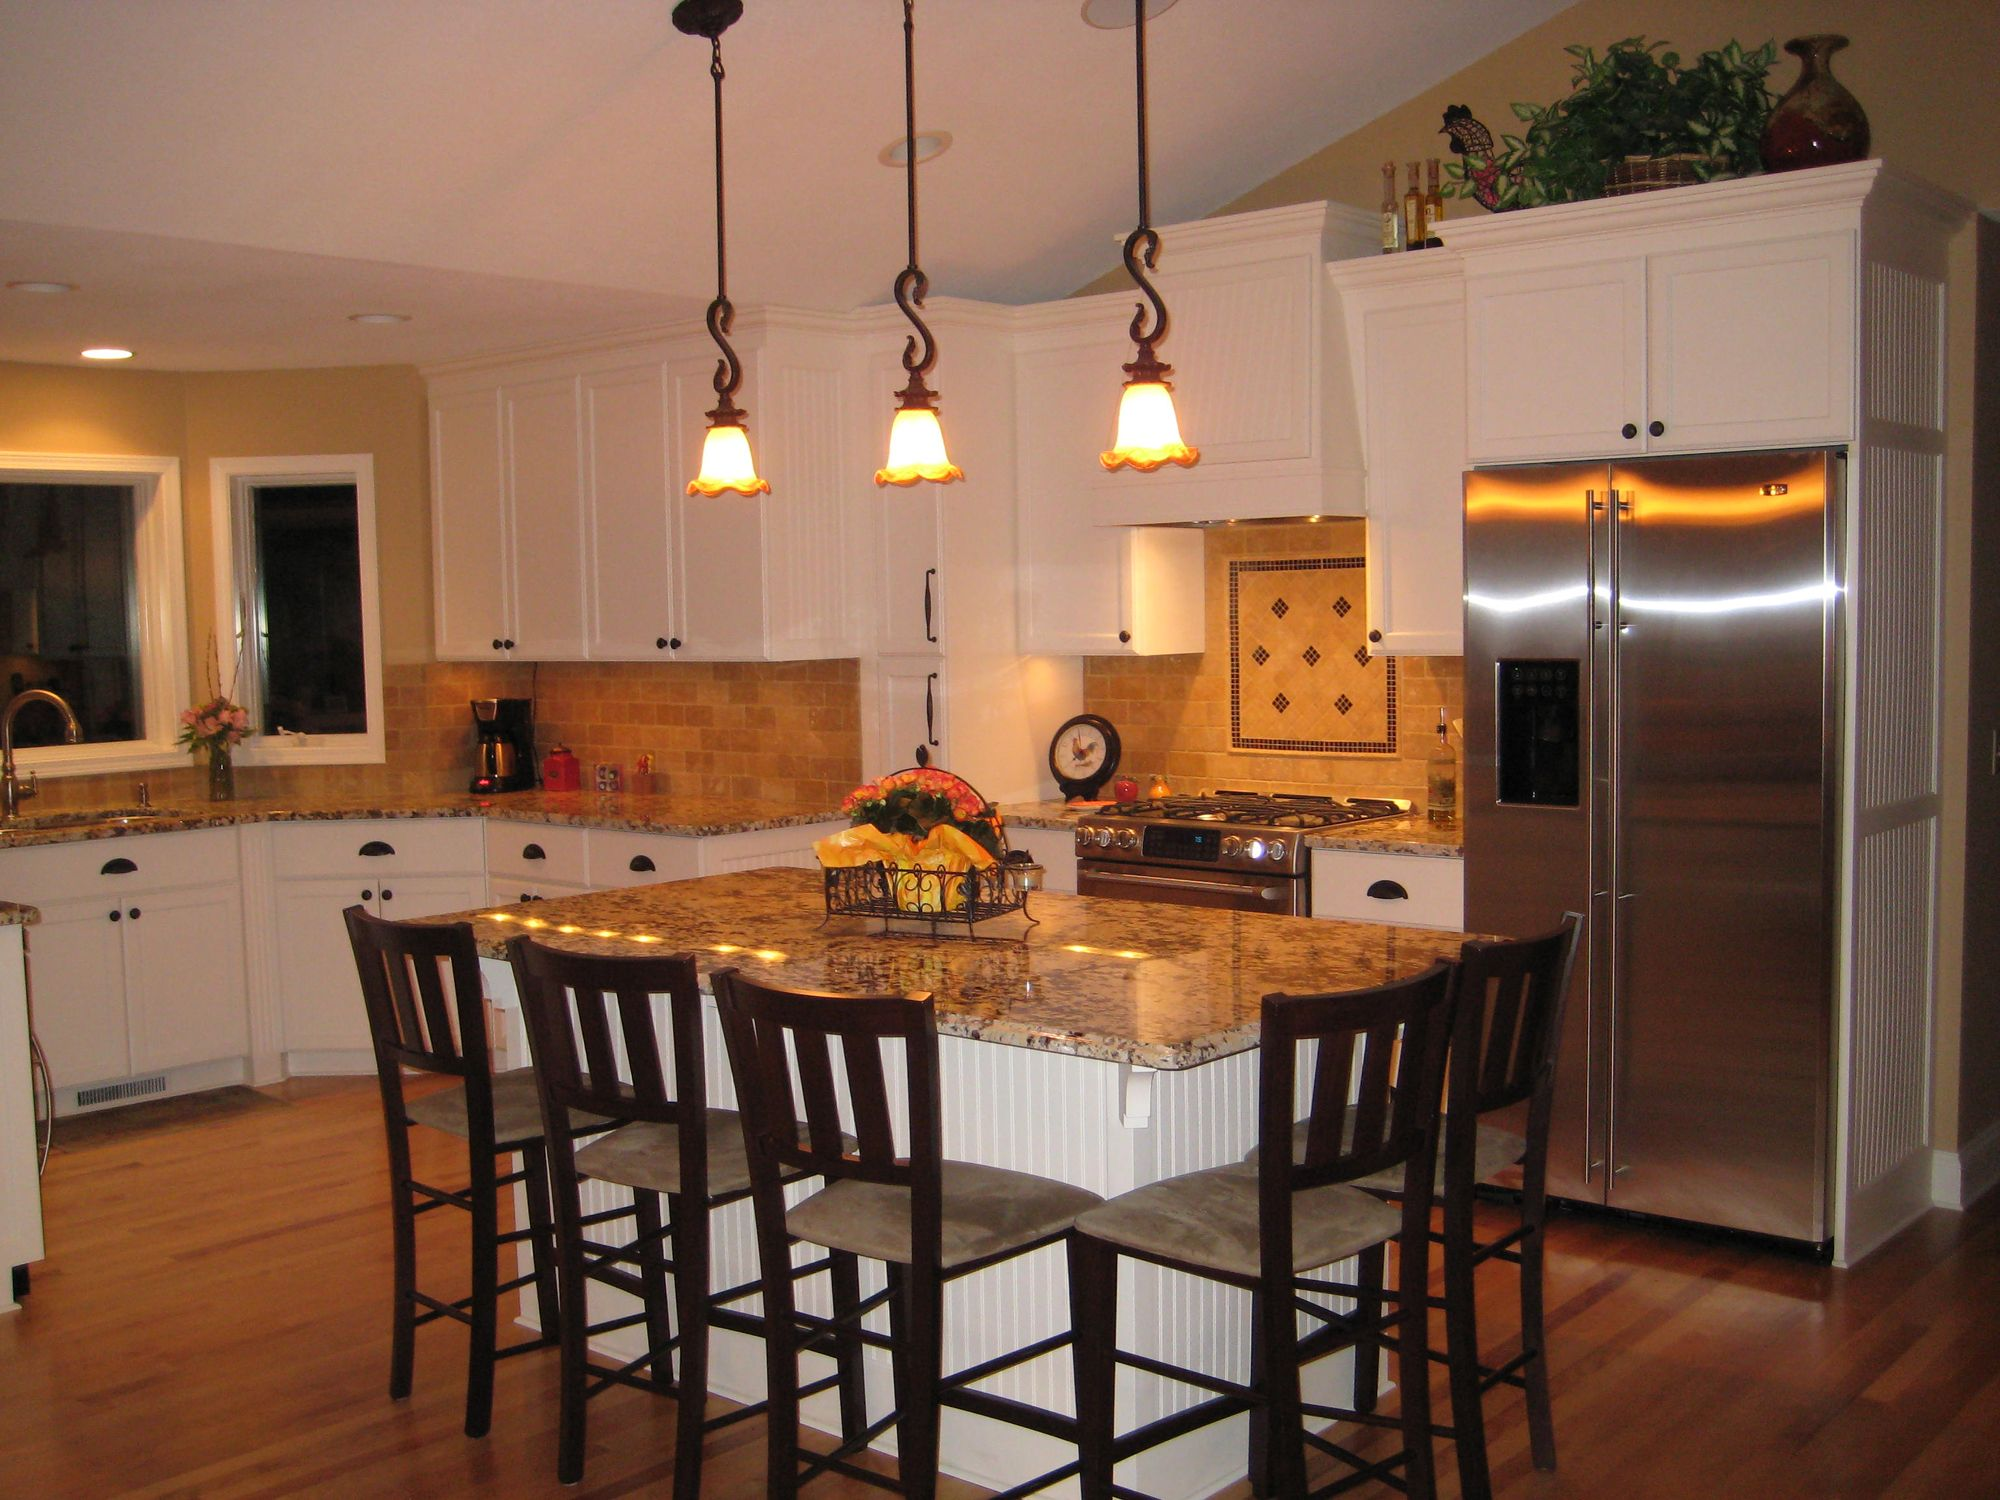 ... Split Level Homes Split Level Kitchen Remodel A Split Level House In  Chanhassen Gets A Family ... Part 38